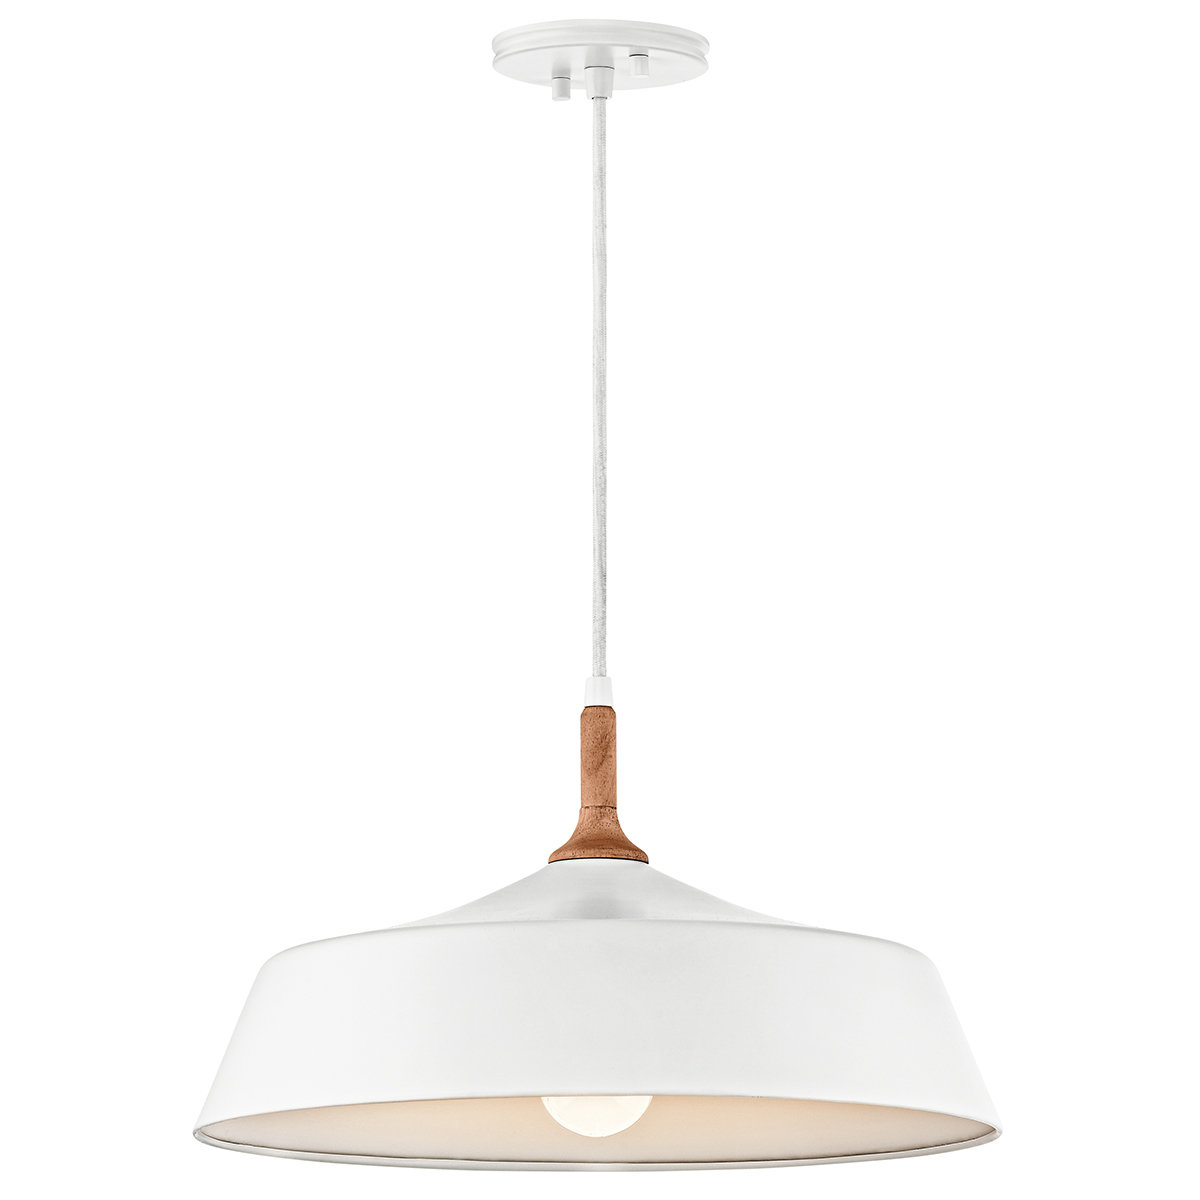 Evelyn 1-Light Single Dome Pendant in 1-Light Single Dome Pendants (Image 11 of 30)